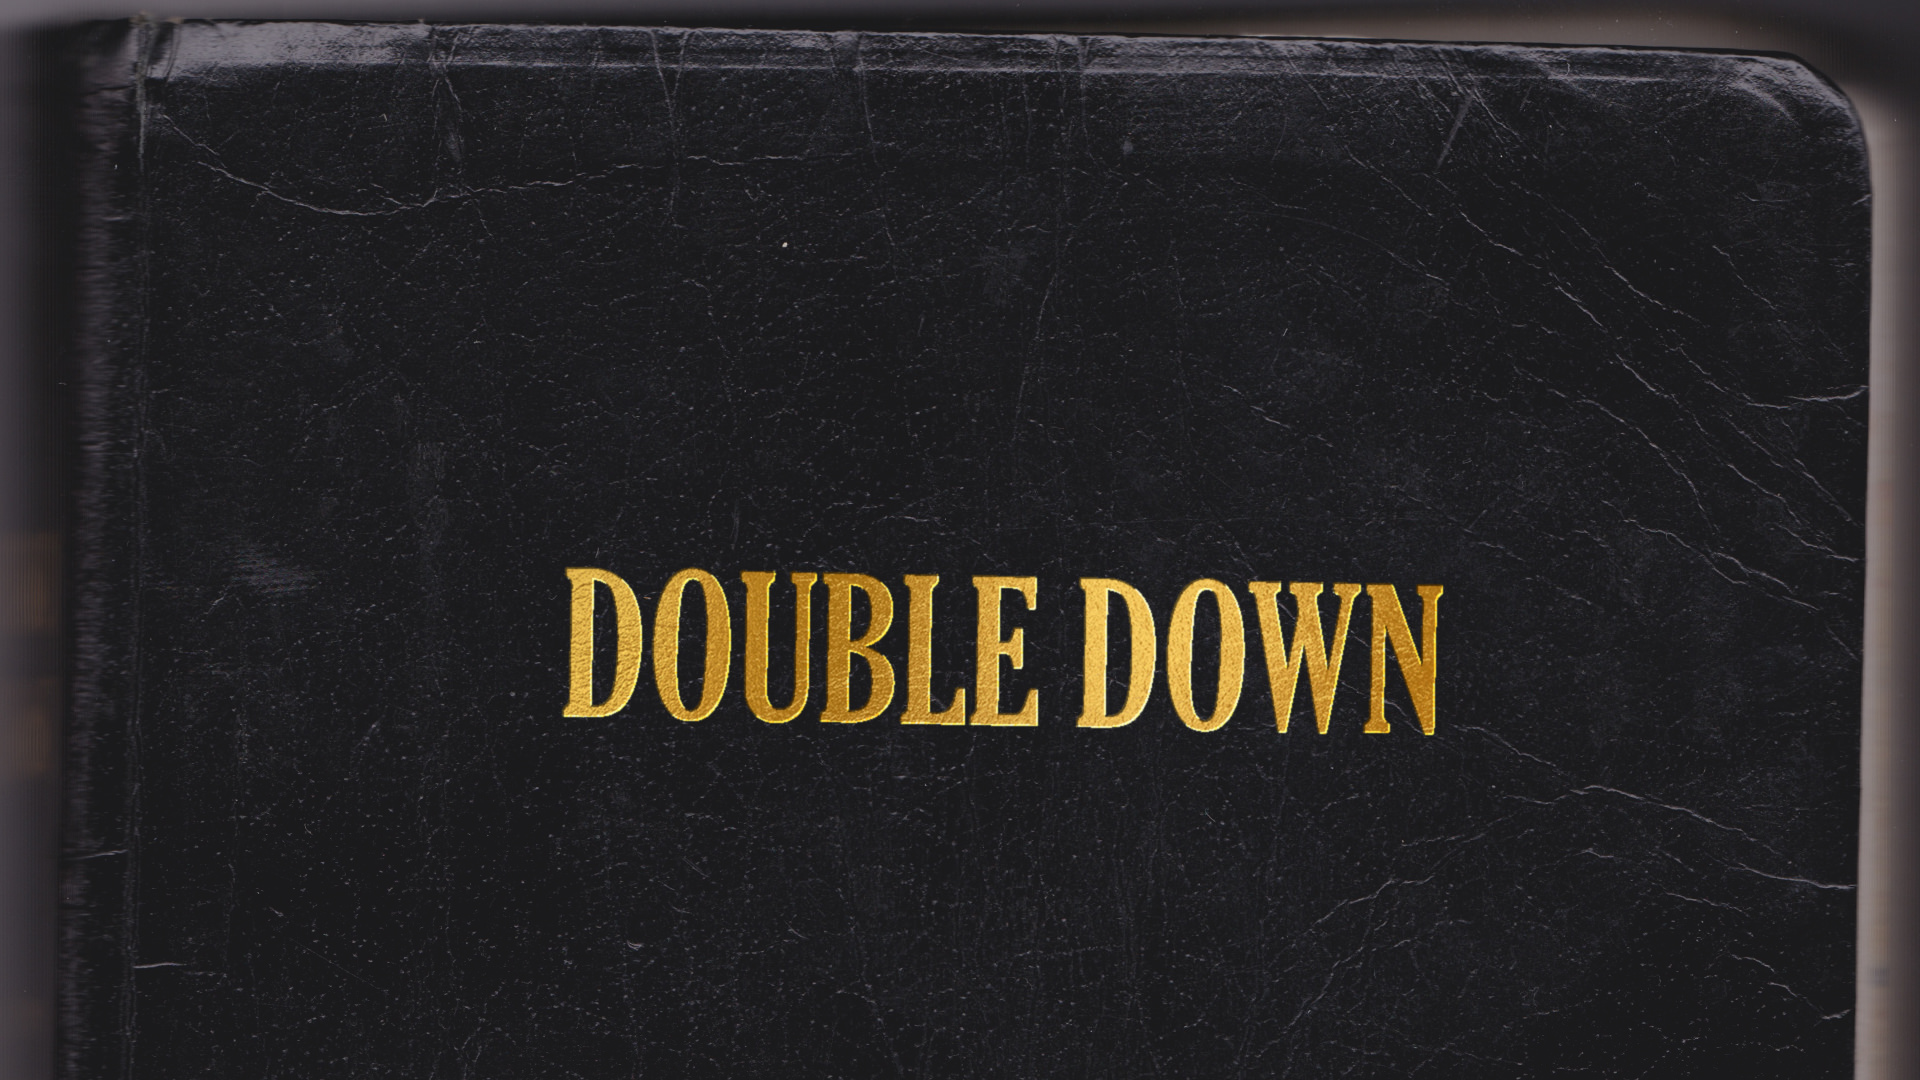 Double Down graphic